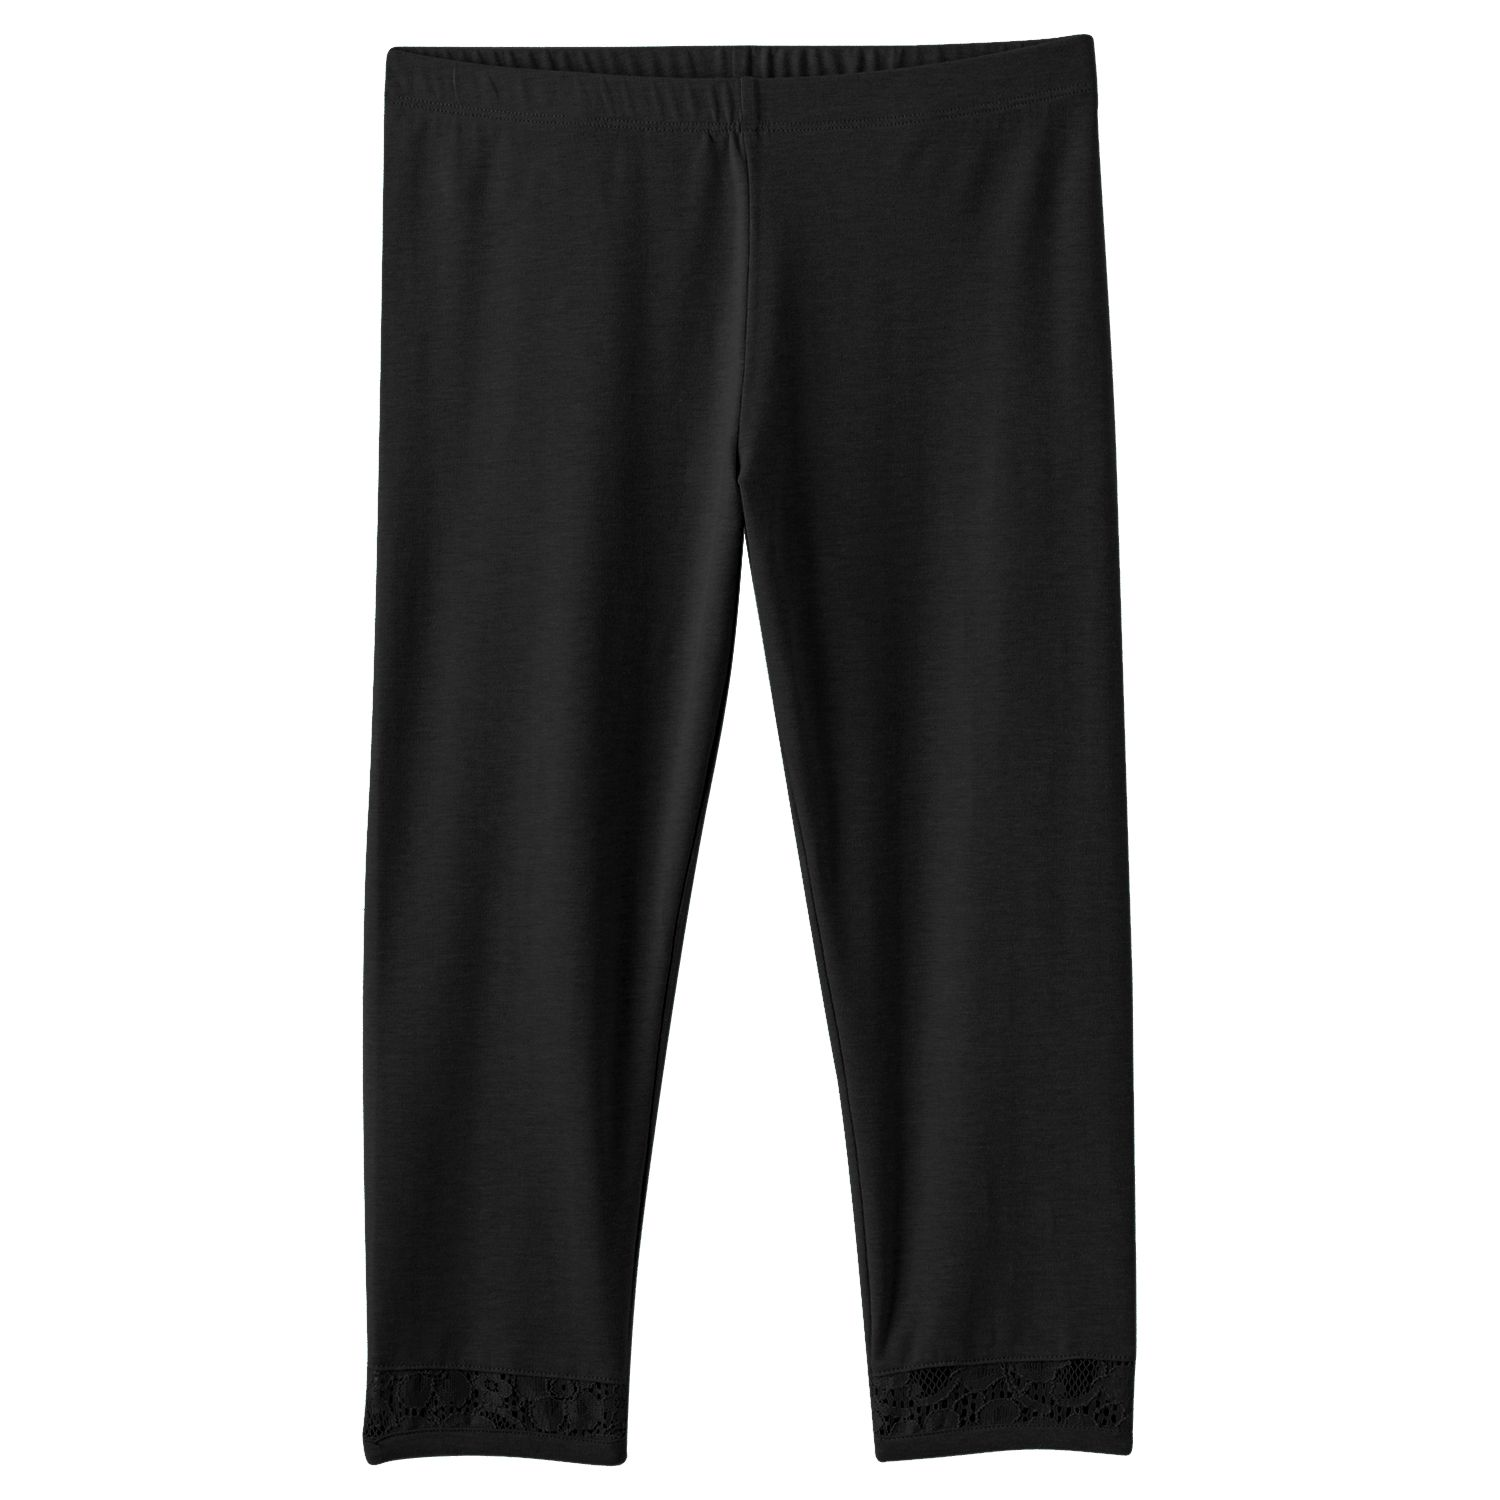 Girls Black Capris